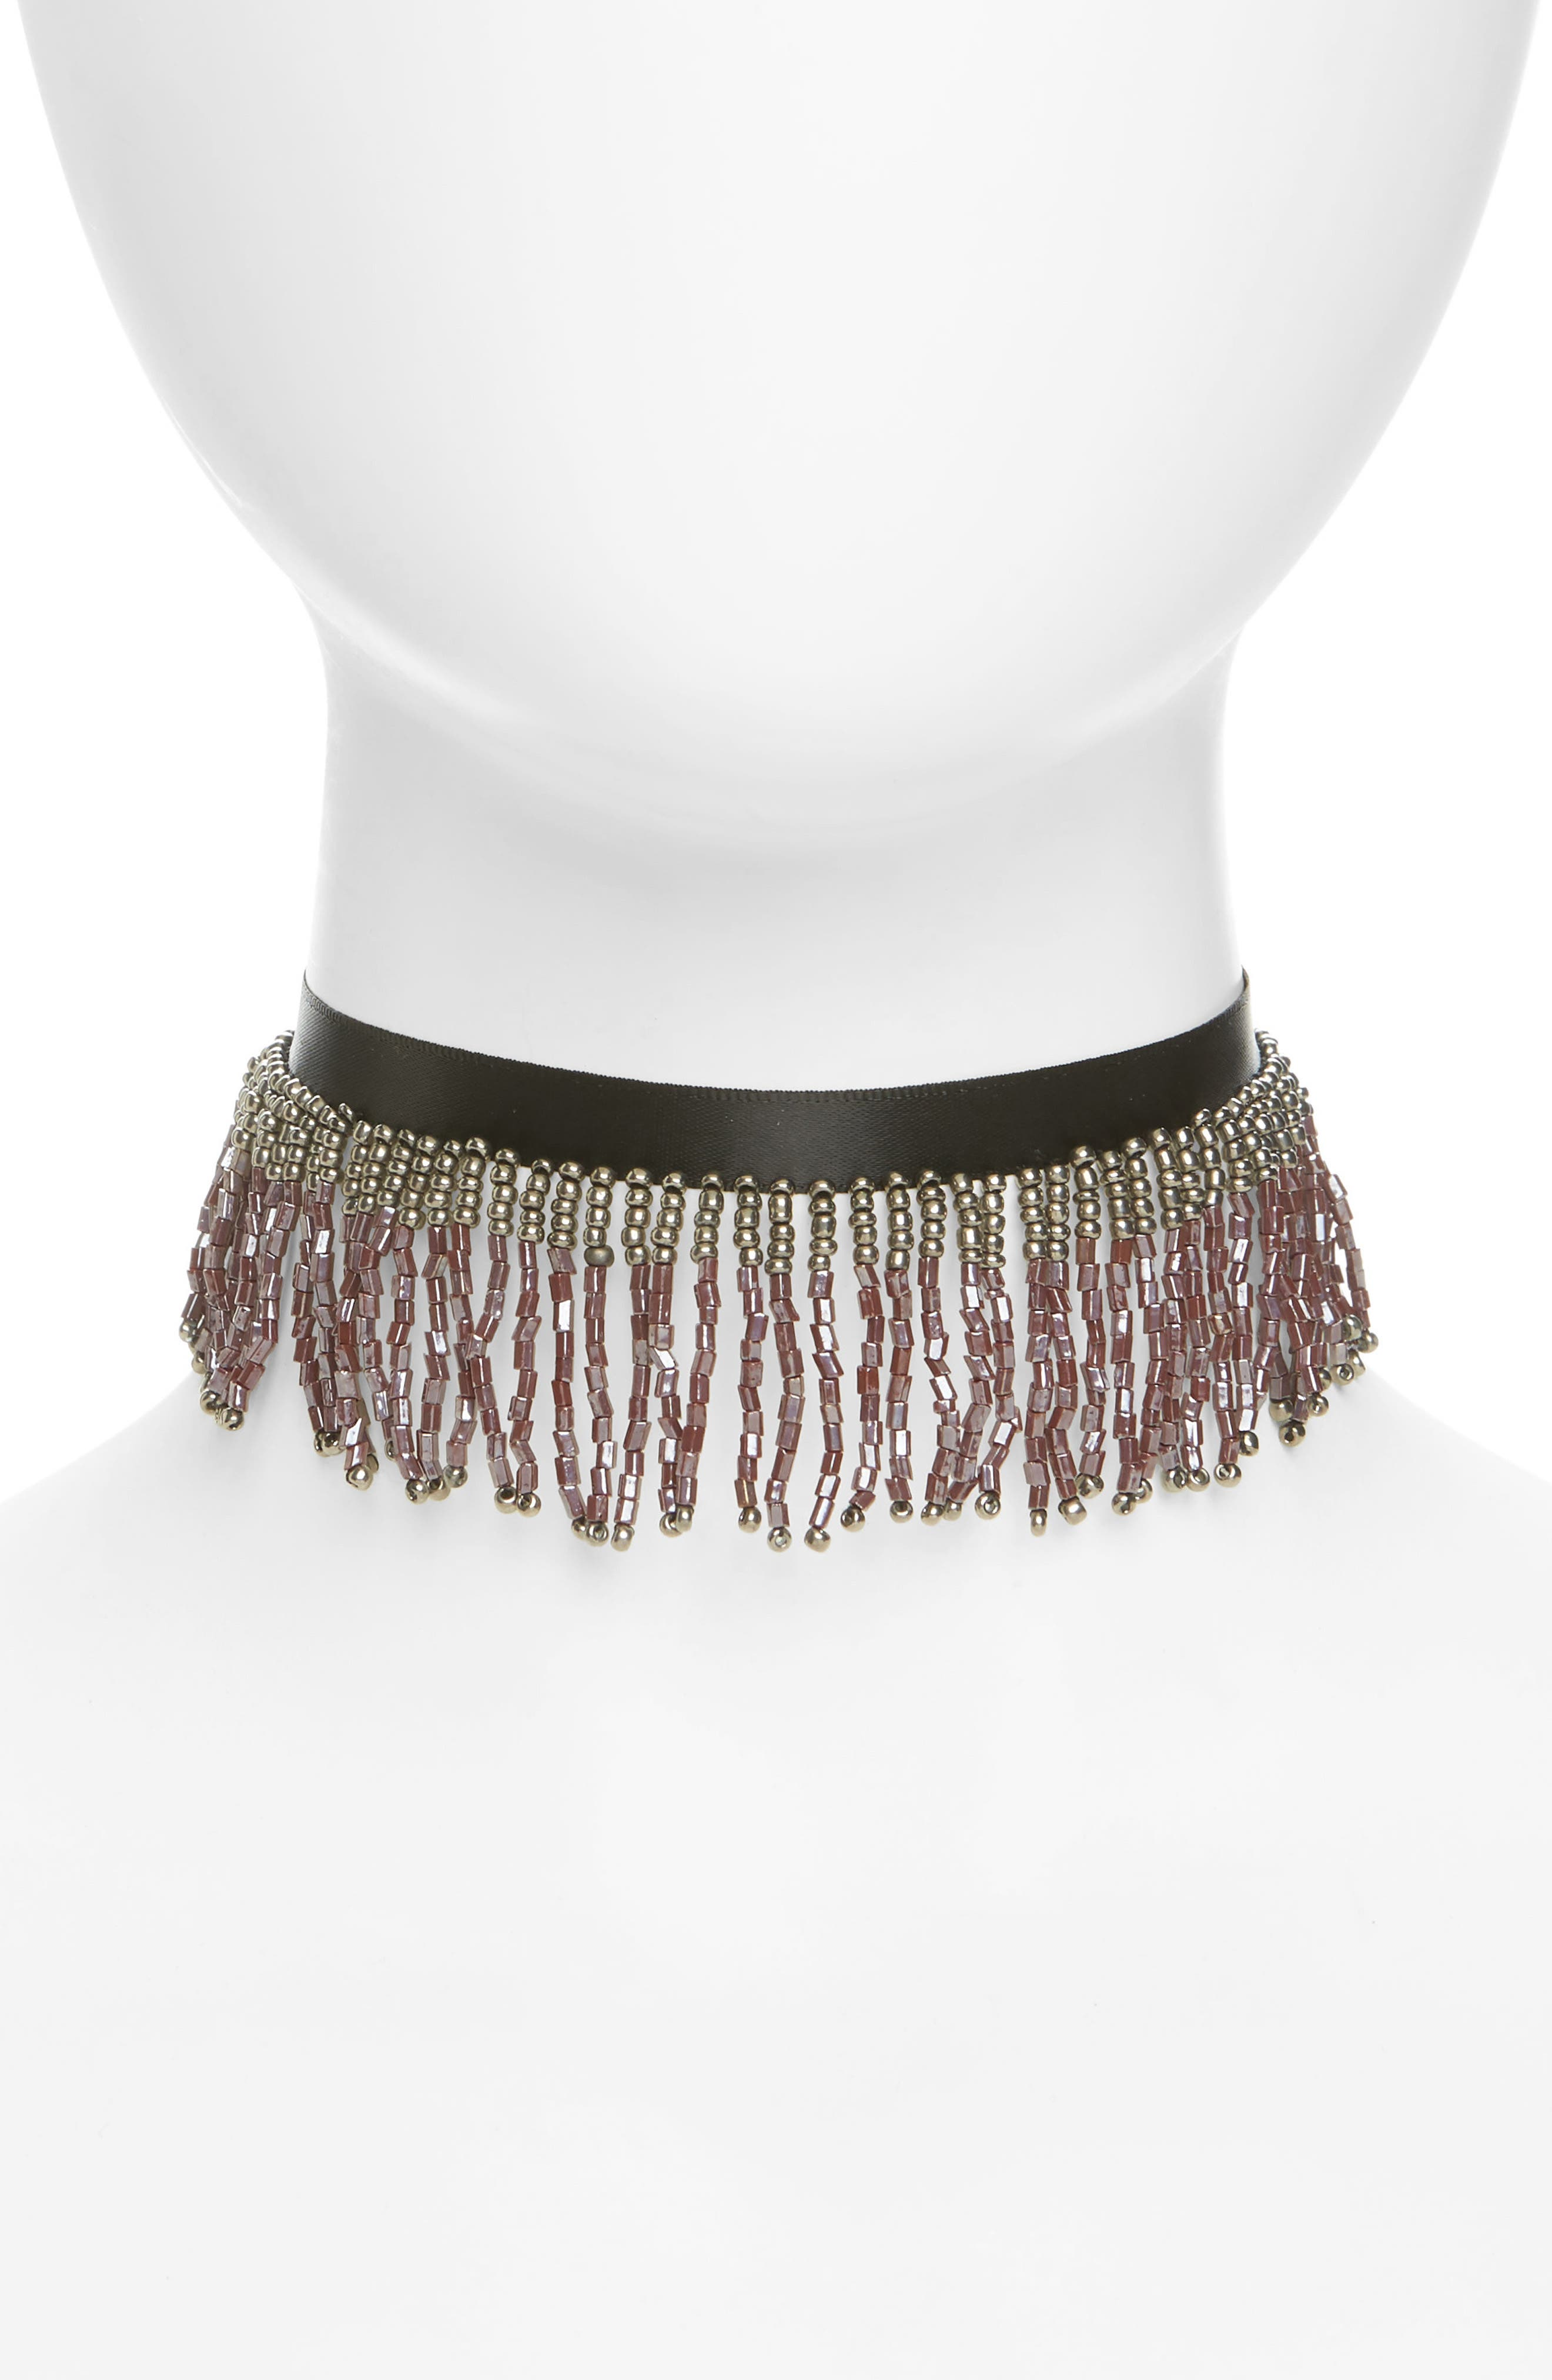 Bead Fringe Choker,                             Main thumbnail 1, color,                             001